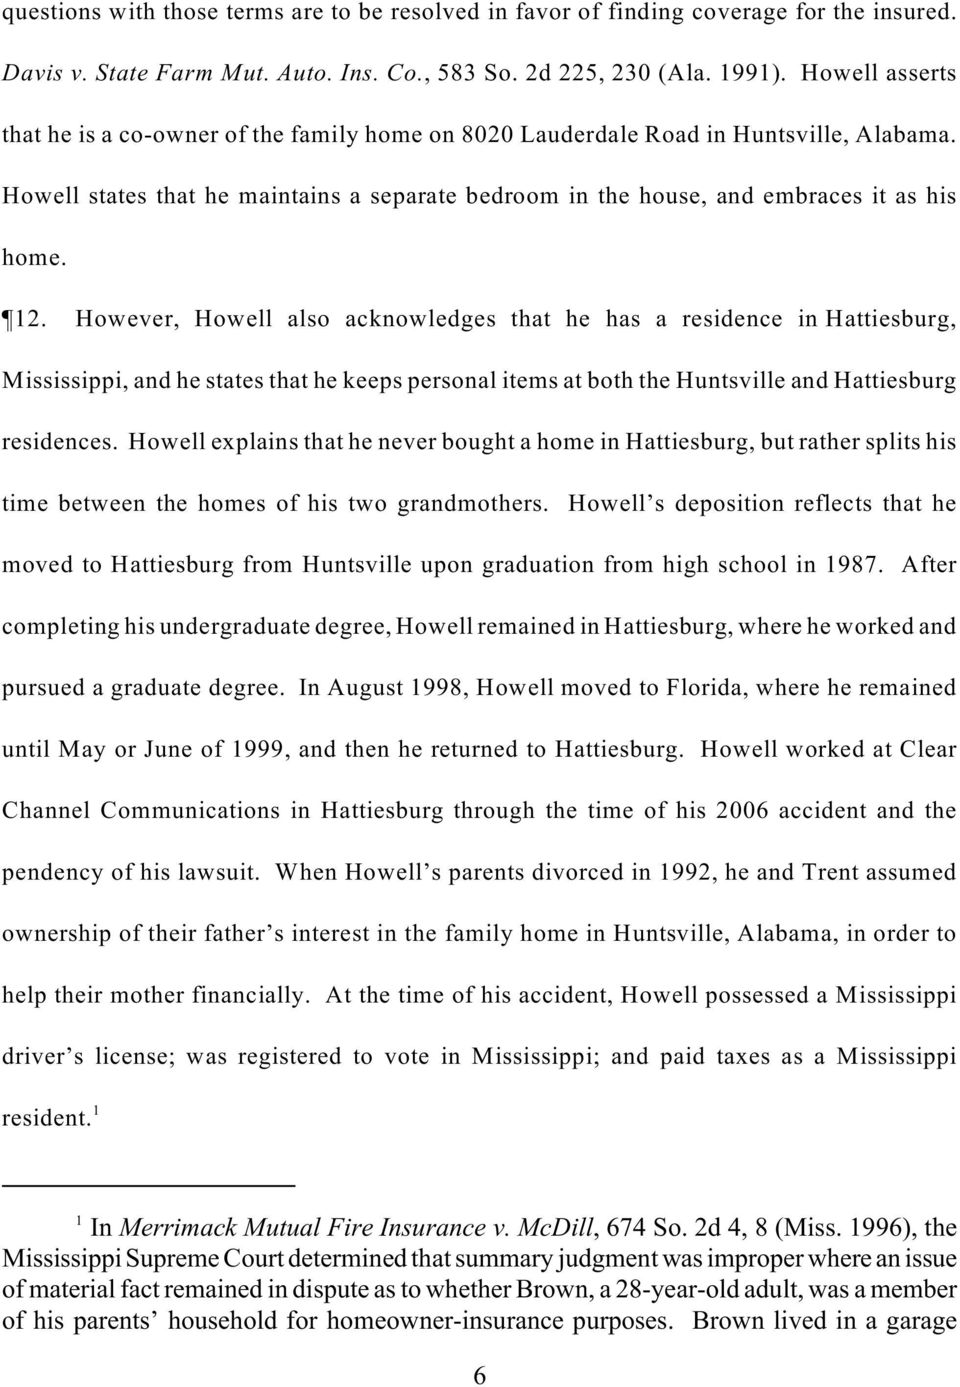 12. However, Howell also acknowledges that he has a residence in Hattiesburg, Mississippi, and he states that he keeps personal items at both the Huntsville and Hattiesburg residences.